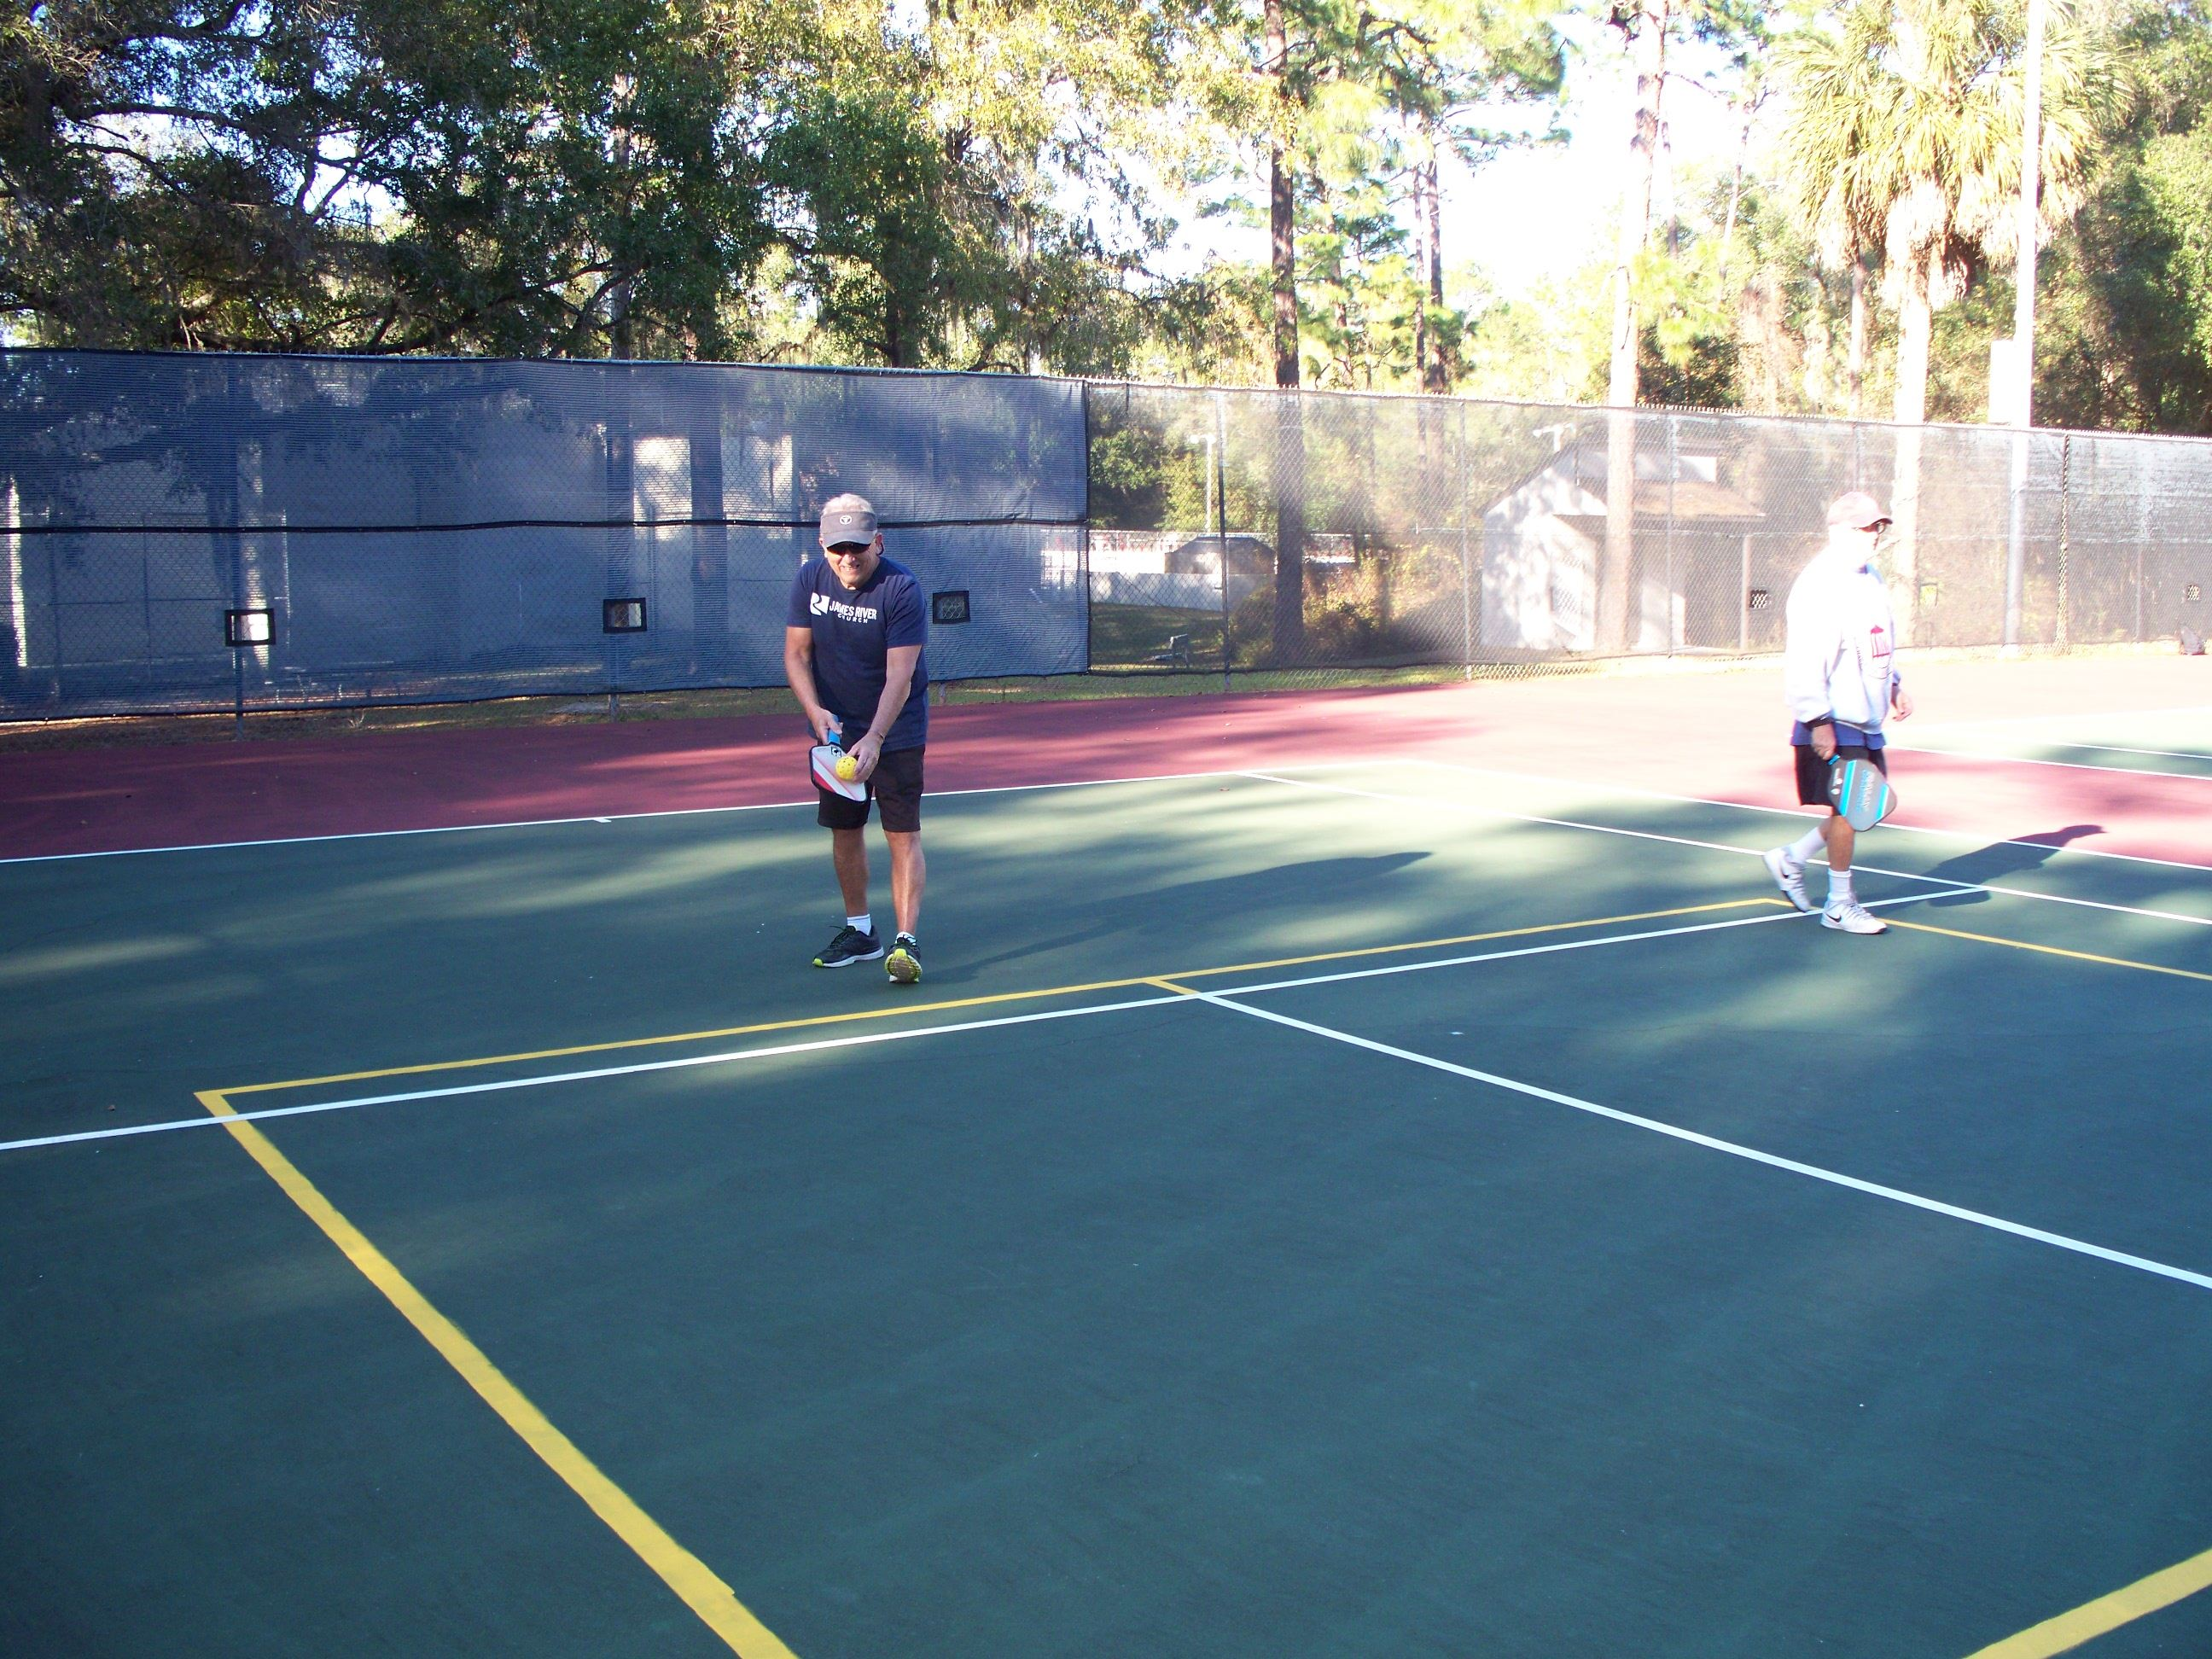 Serving up Pickleball 03